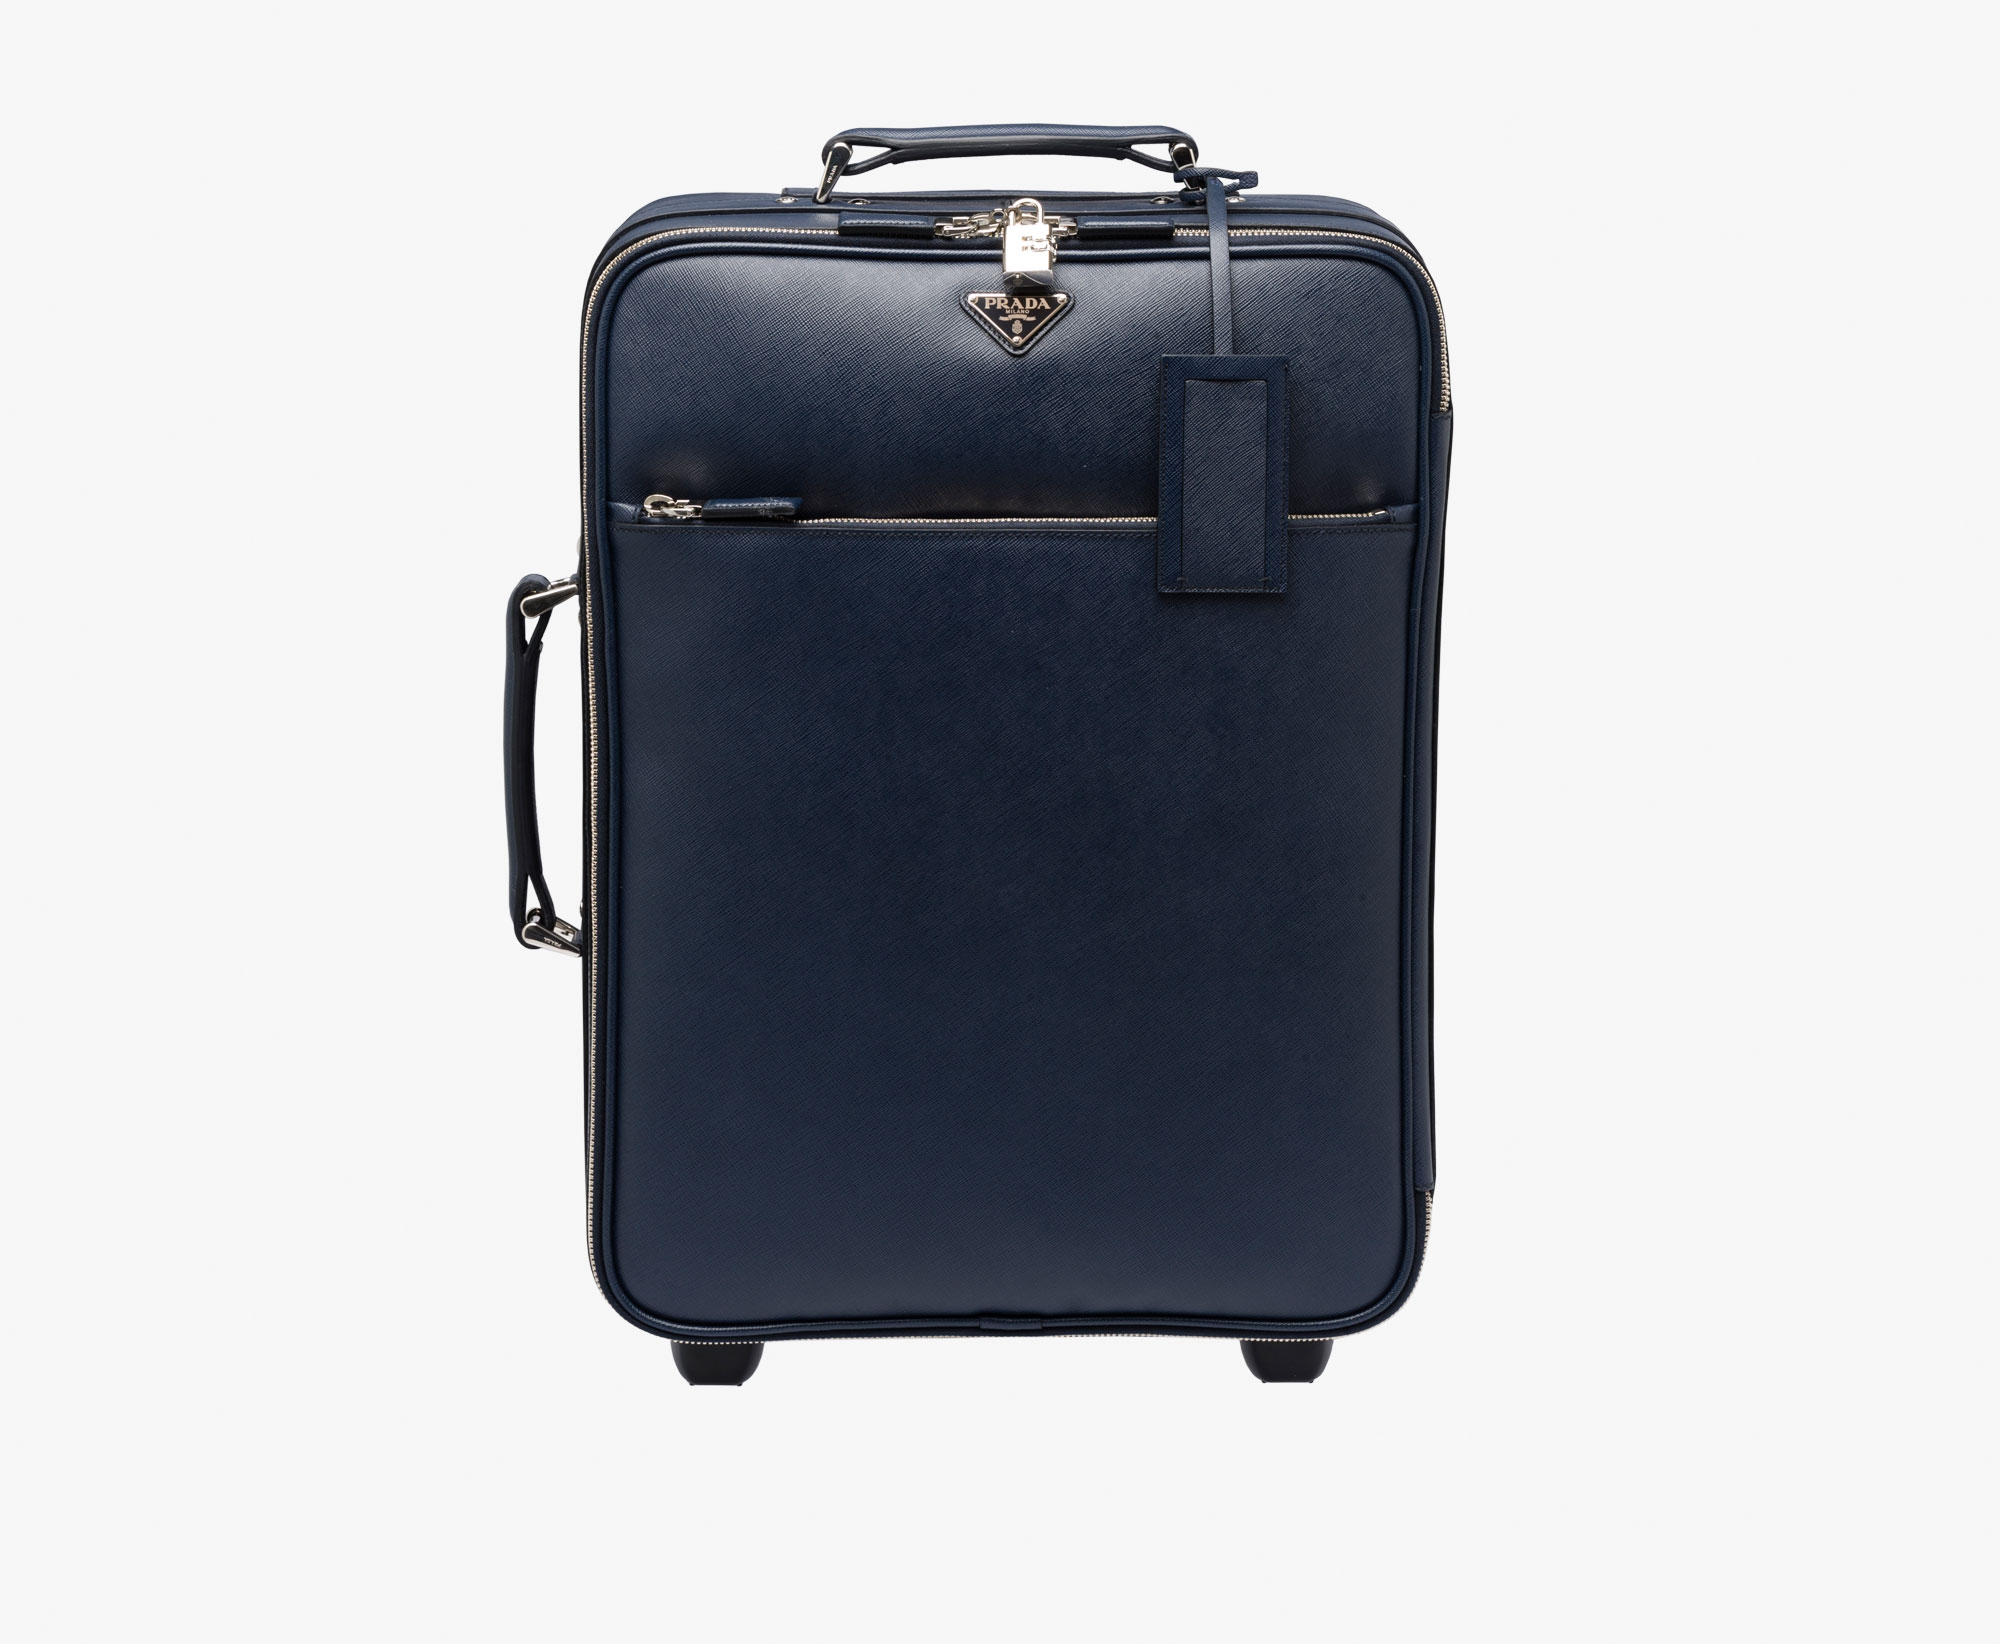 Buy Prada Trolley Bag Baltic Blue [2VQ030 9Z2 F0216 V OOK], Price ... - prada pouch baltic blue